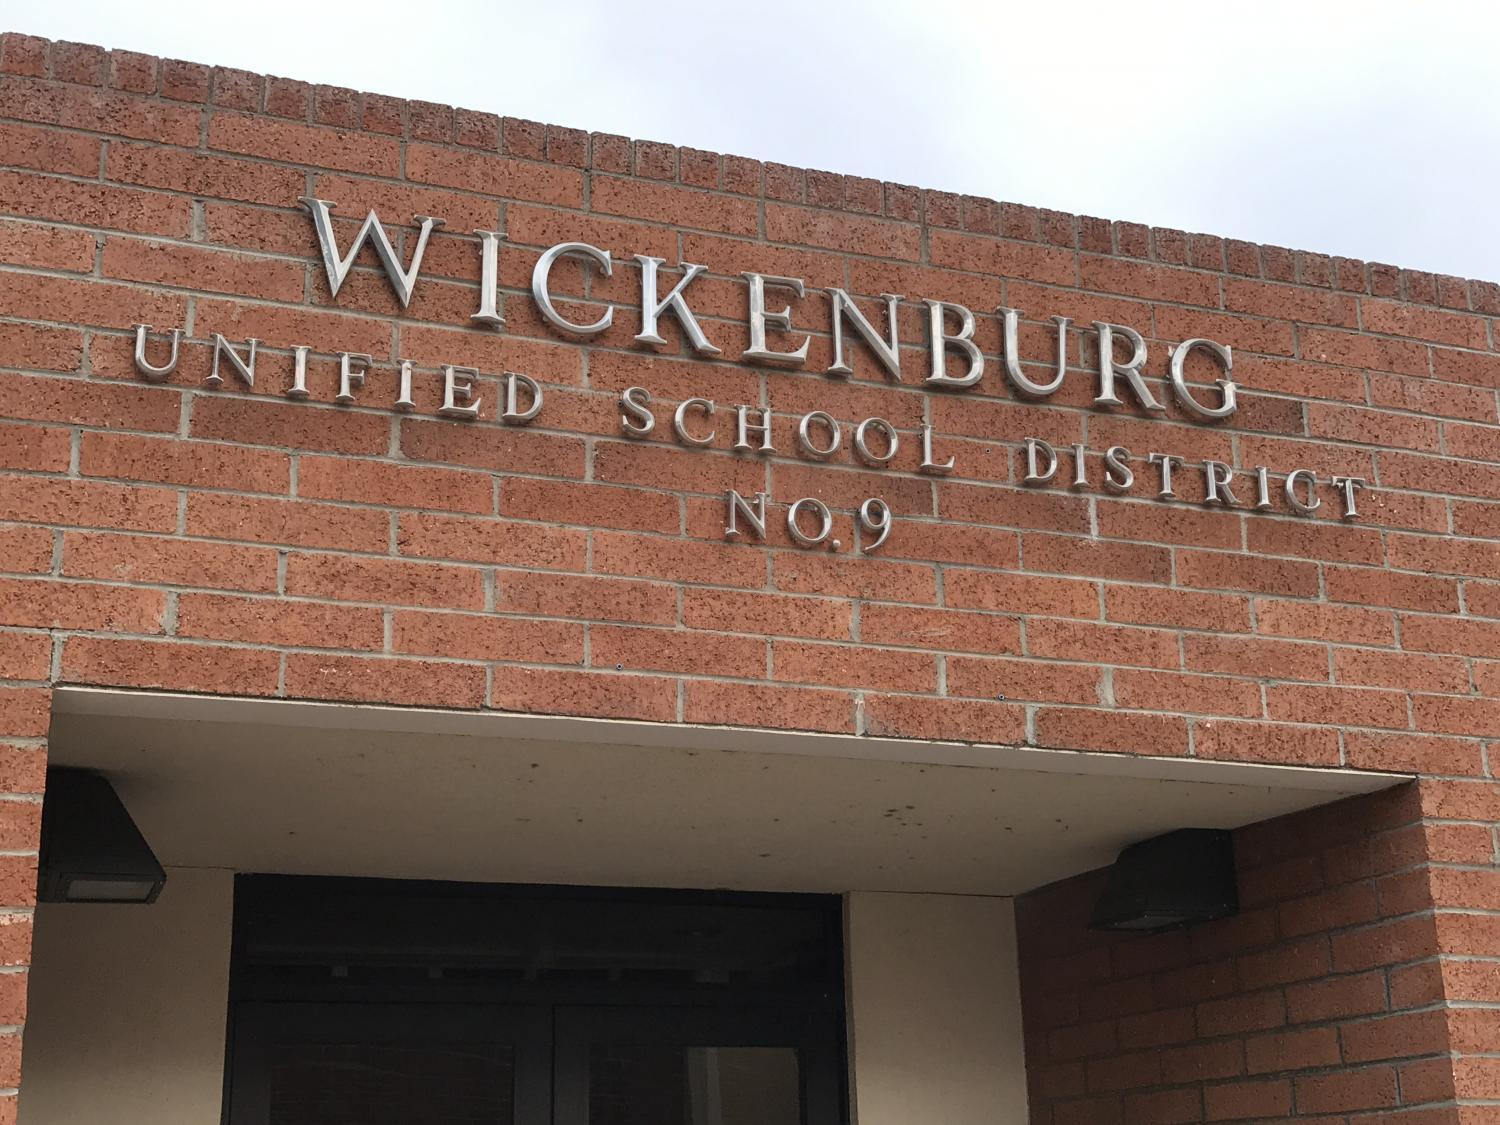 Wickenburg Unified School District